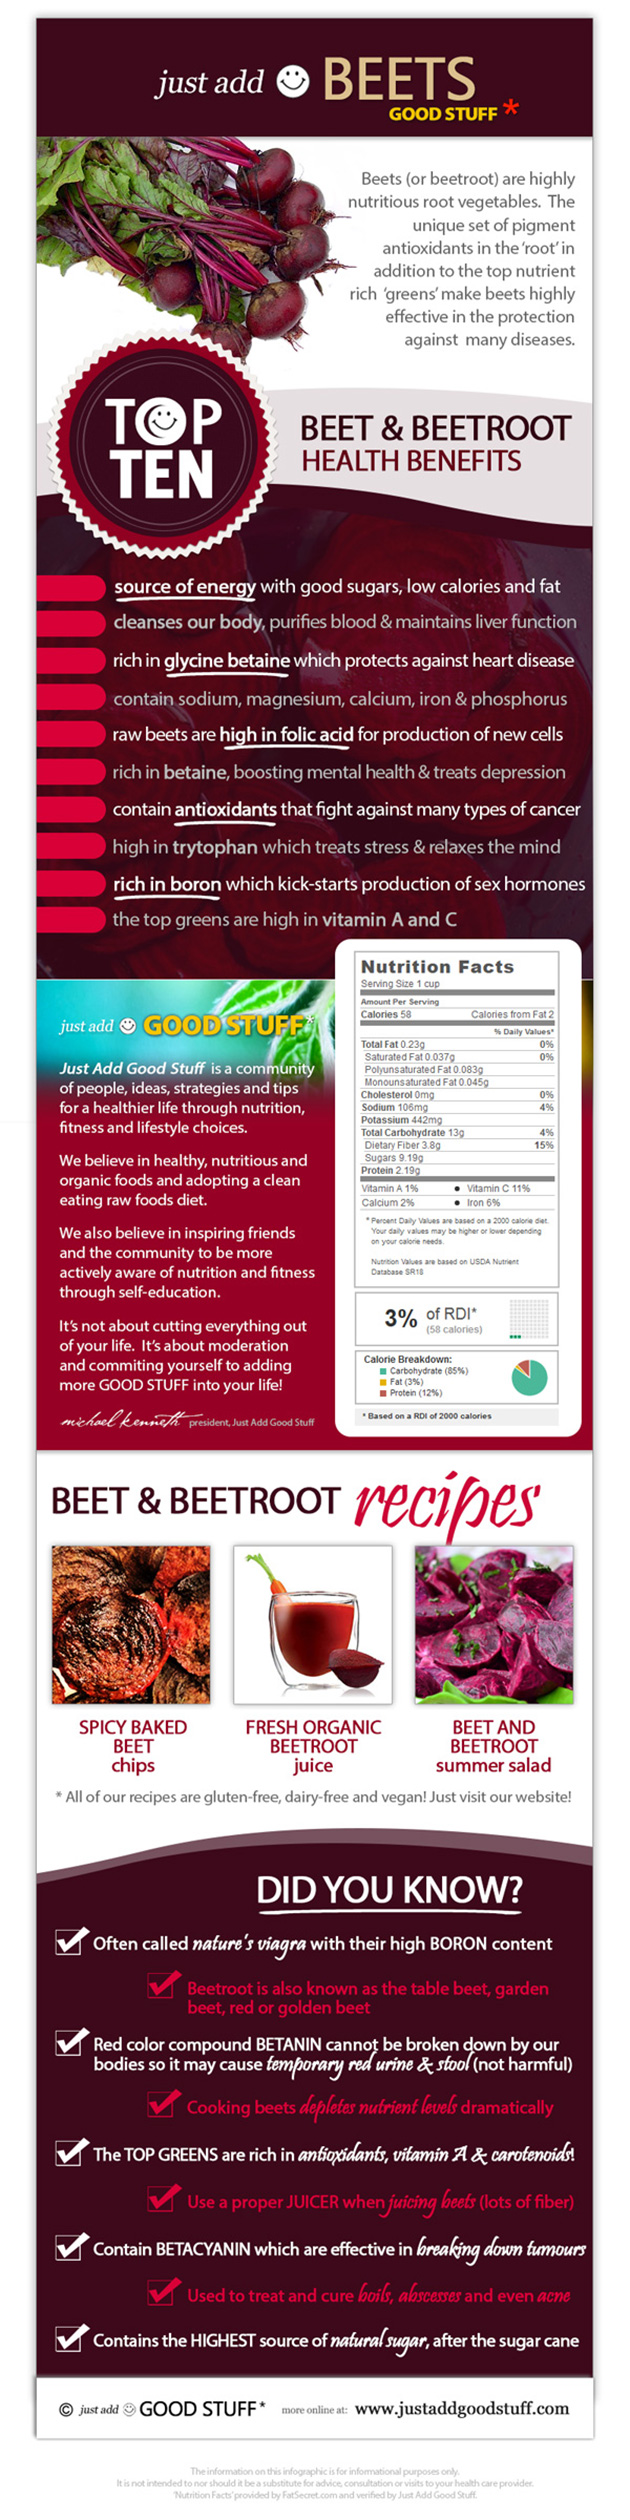 10 Beetroot Benefits Infographic